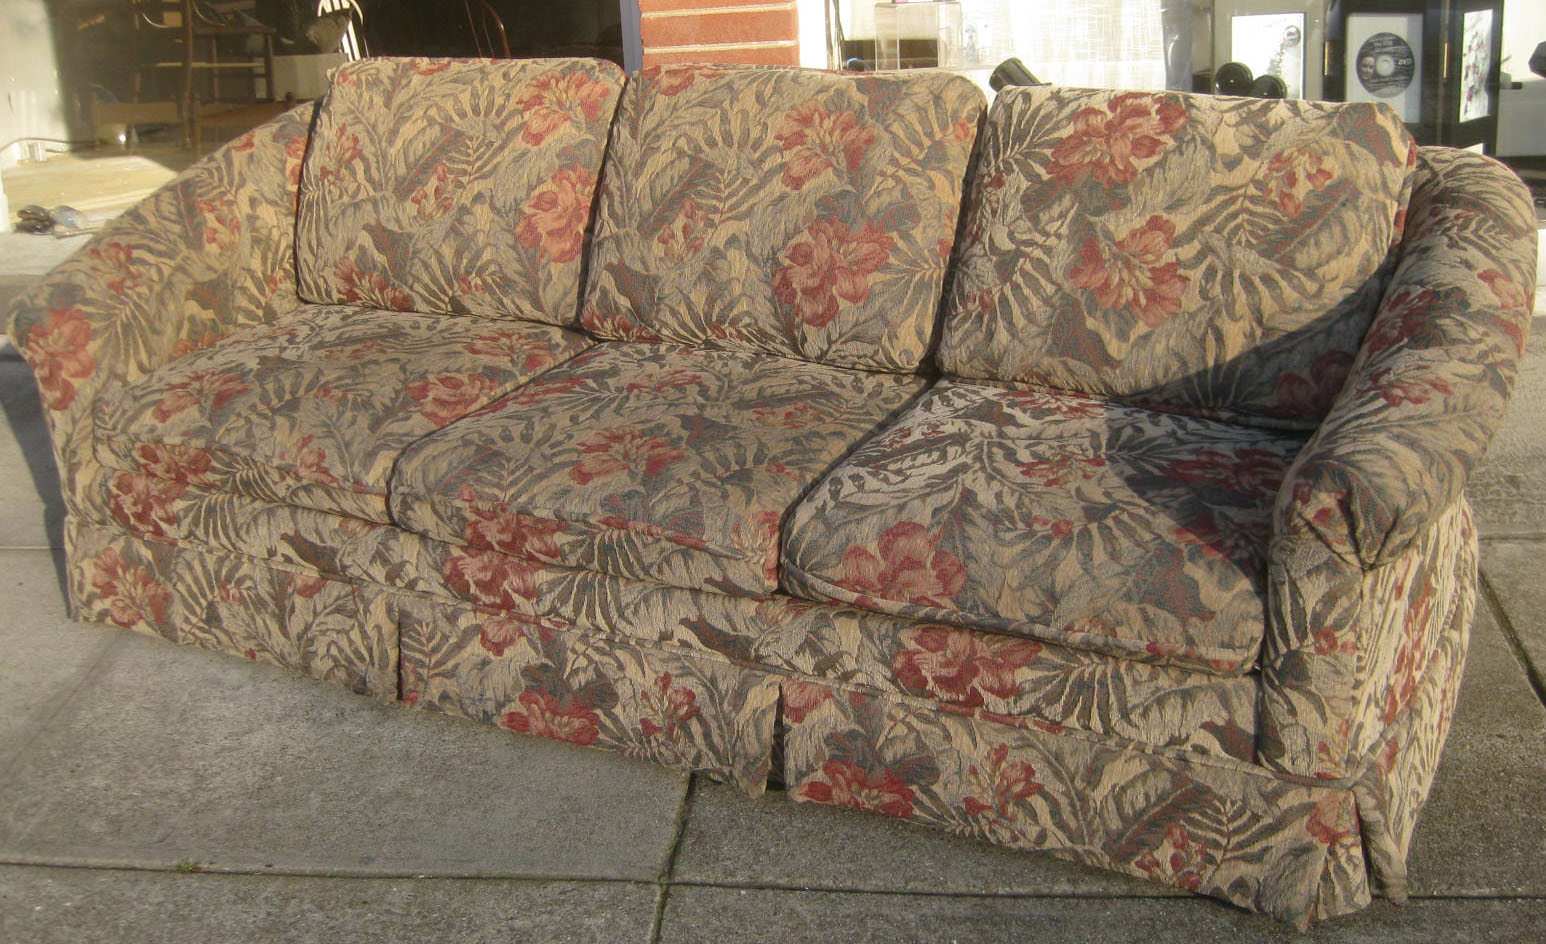 UHURU FURNITURE & COLLECTIBLES: SOLD - Floral Print Sofa - $80